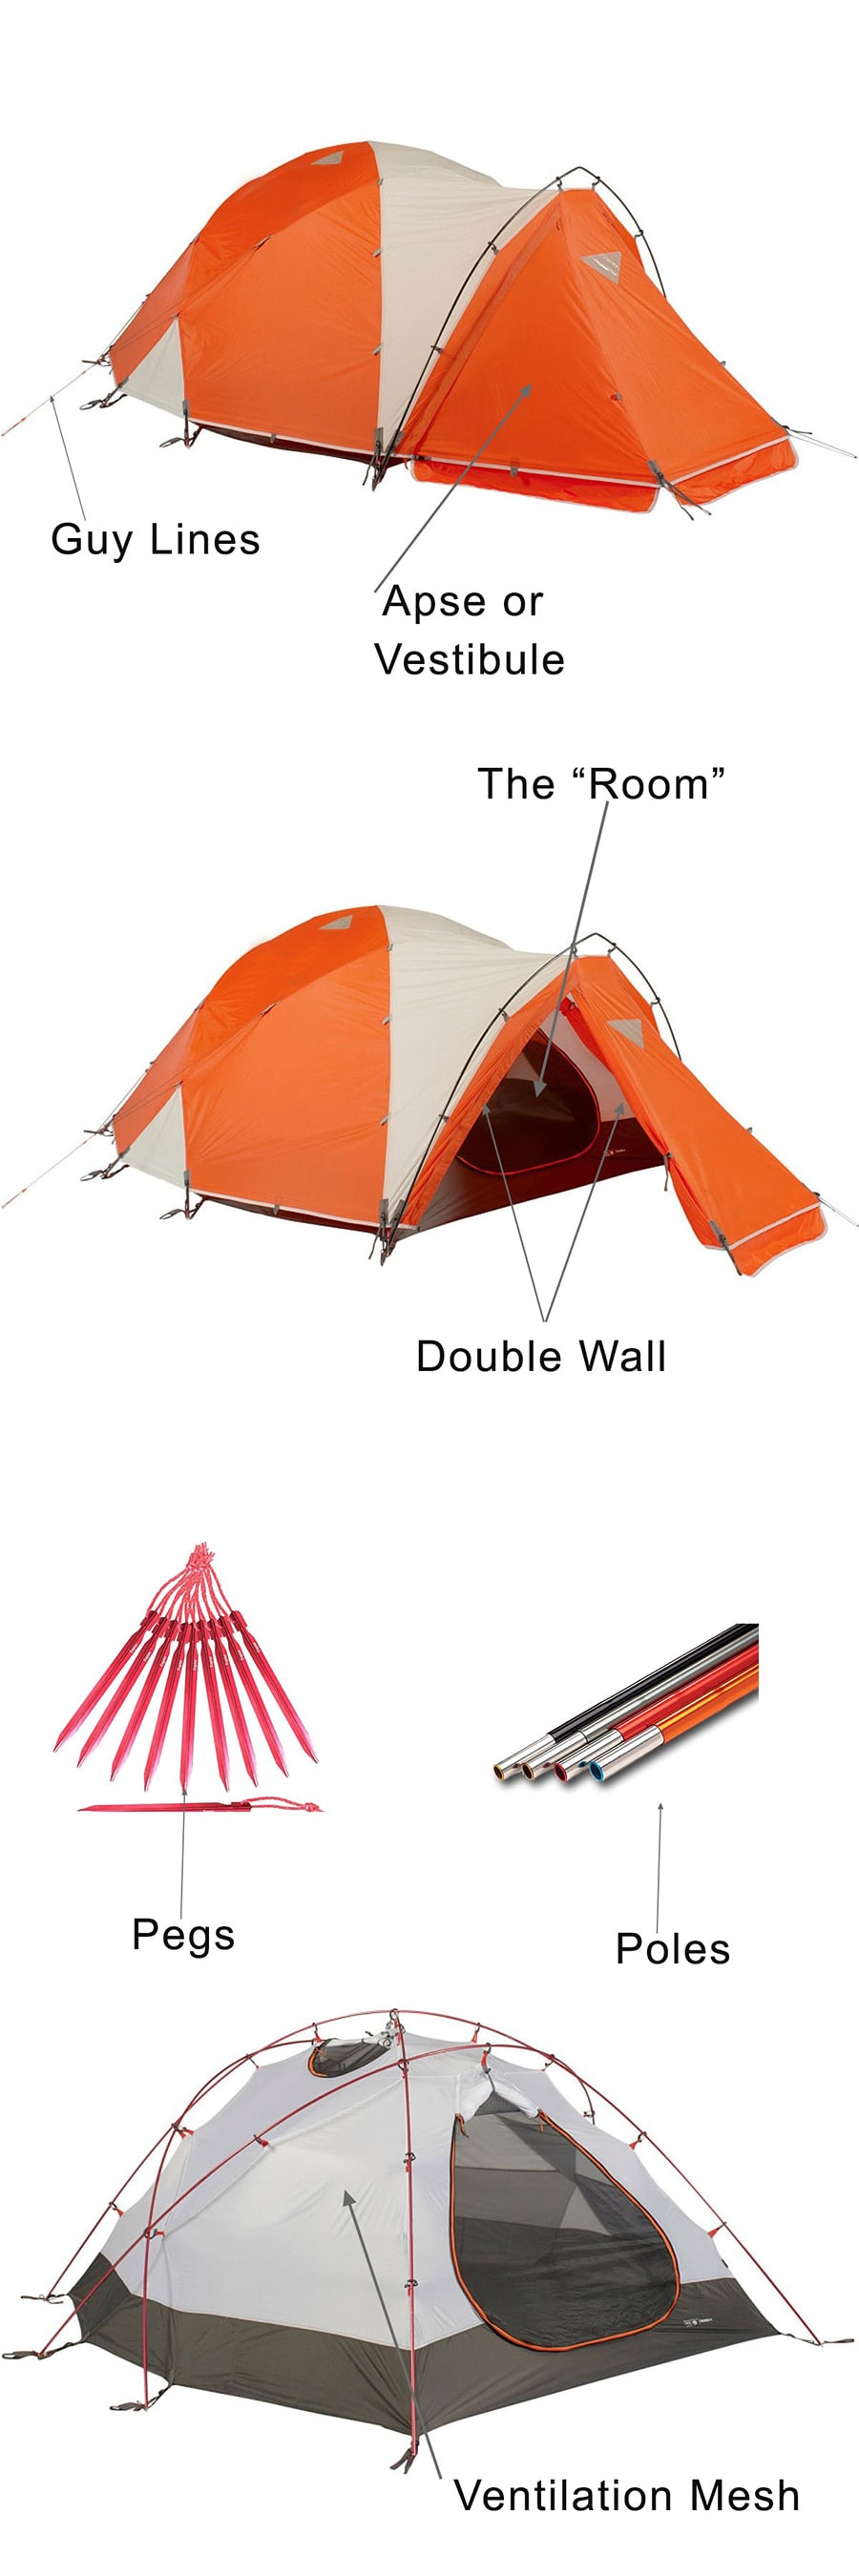 The different elements of a tent